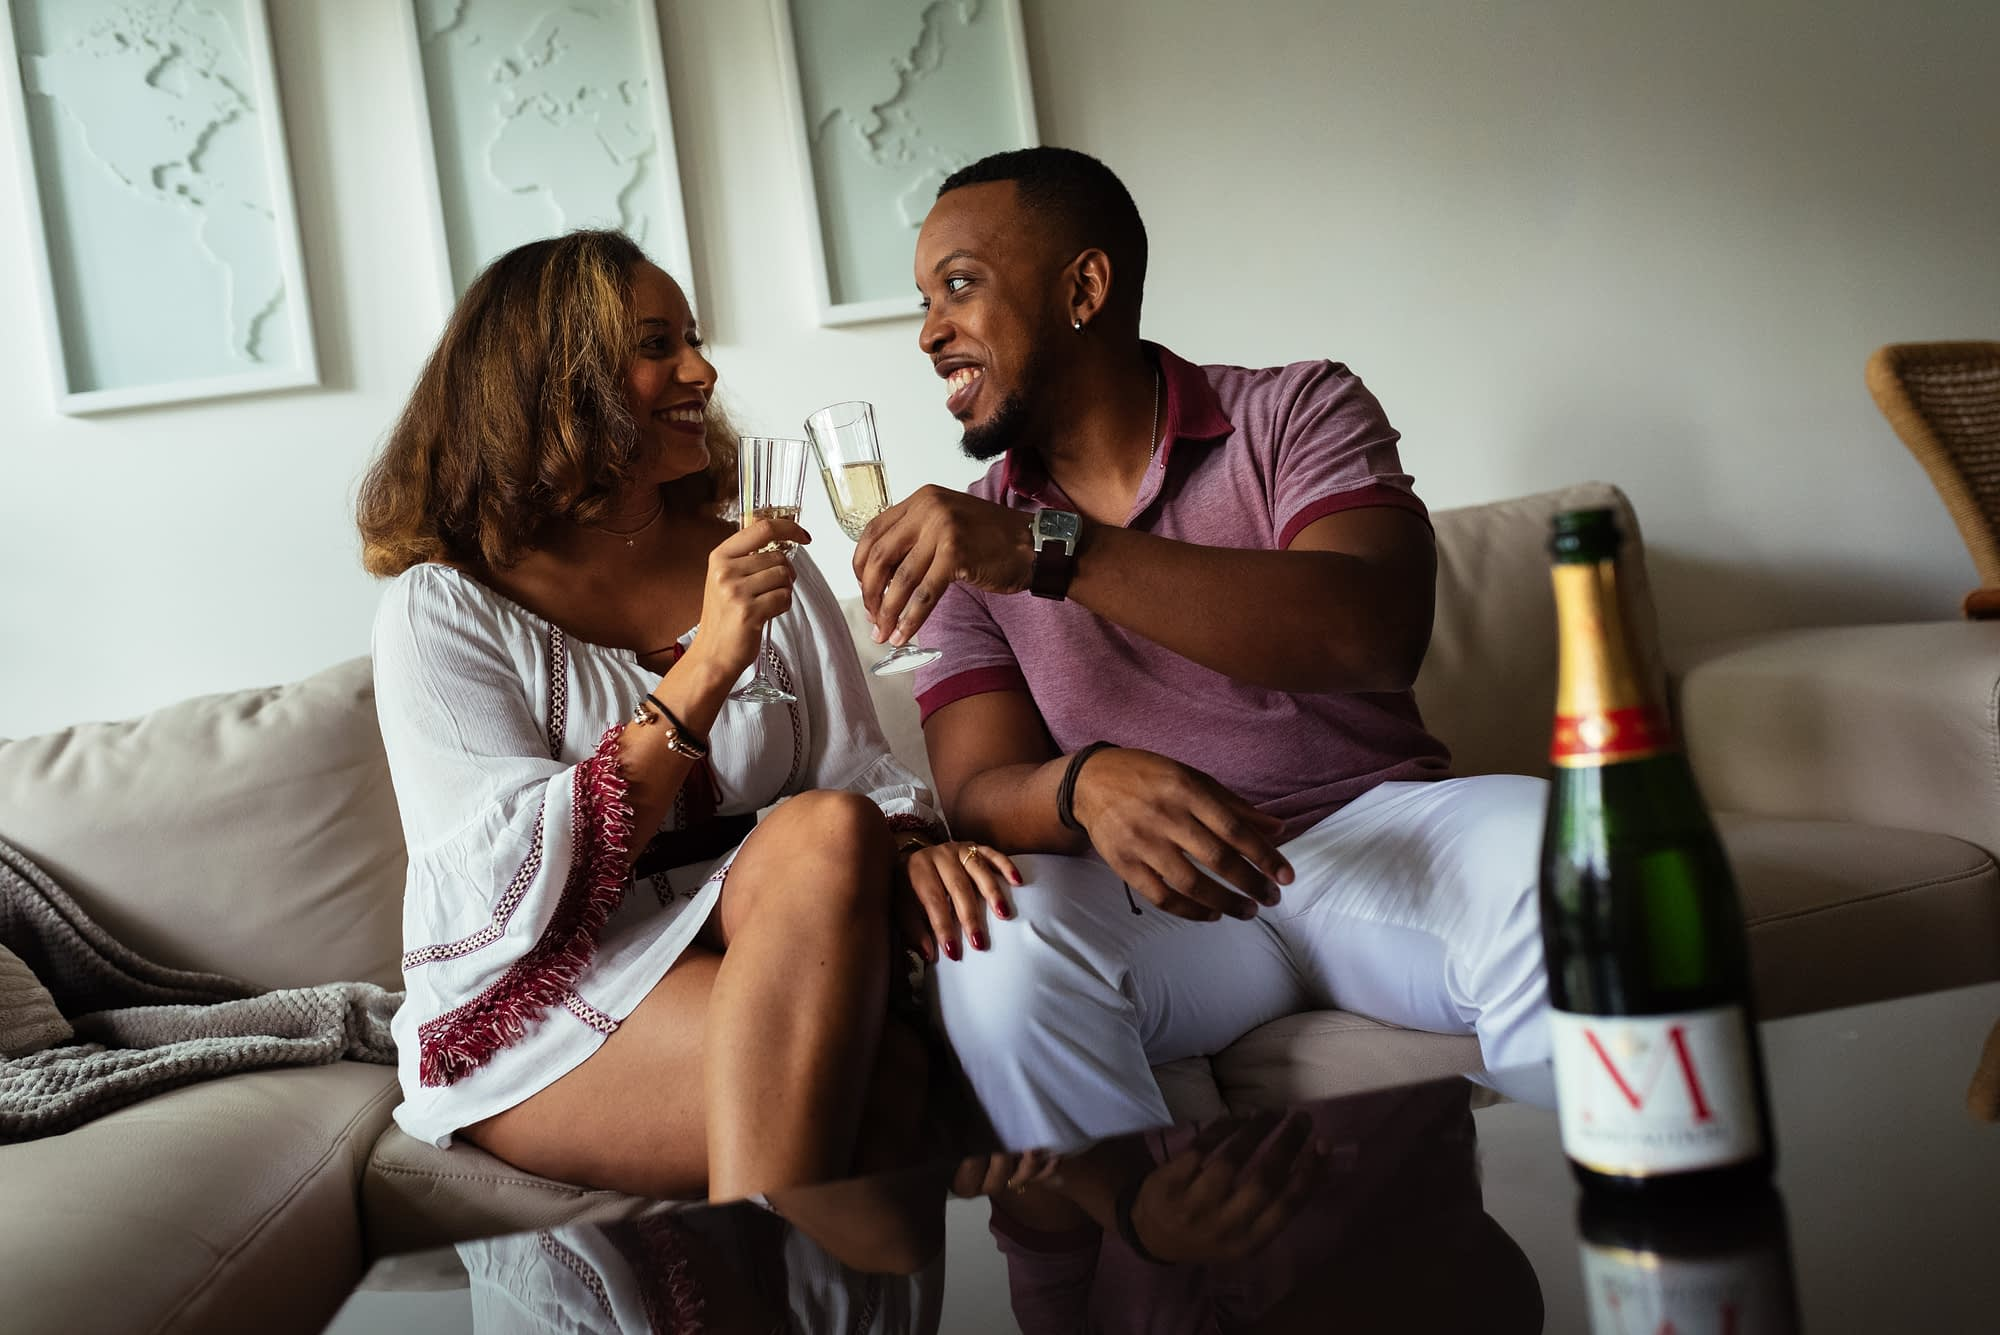 Engagement photos at home with champagne